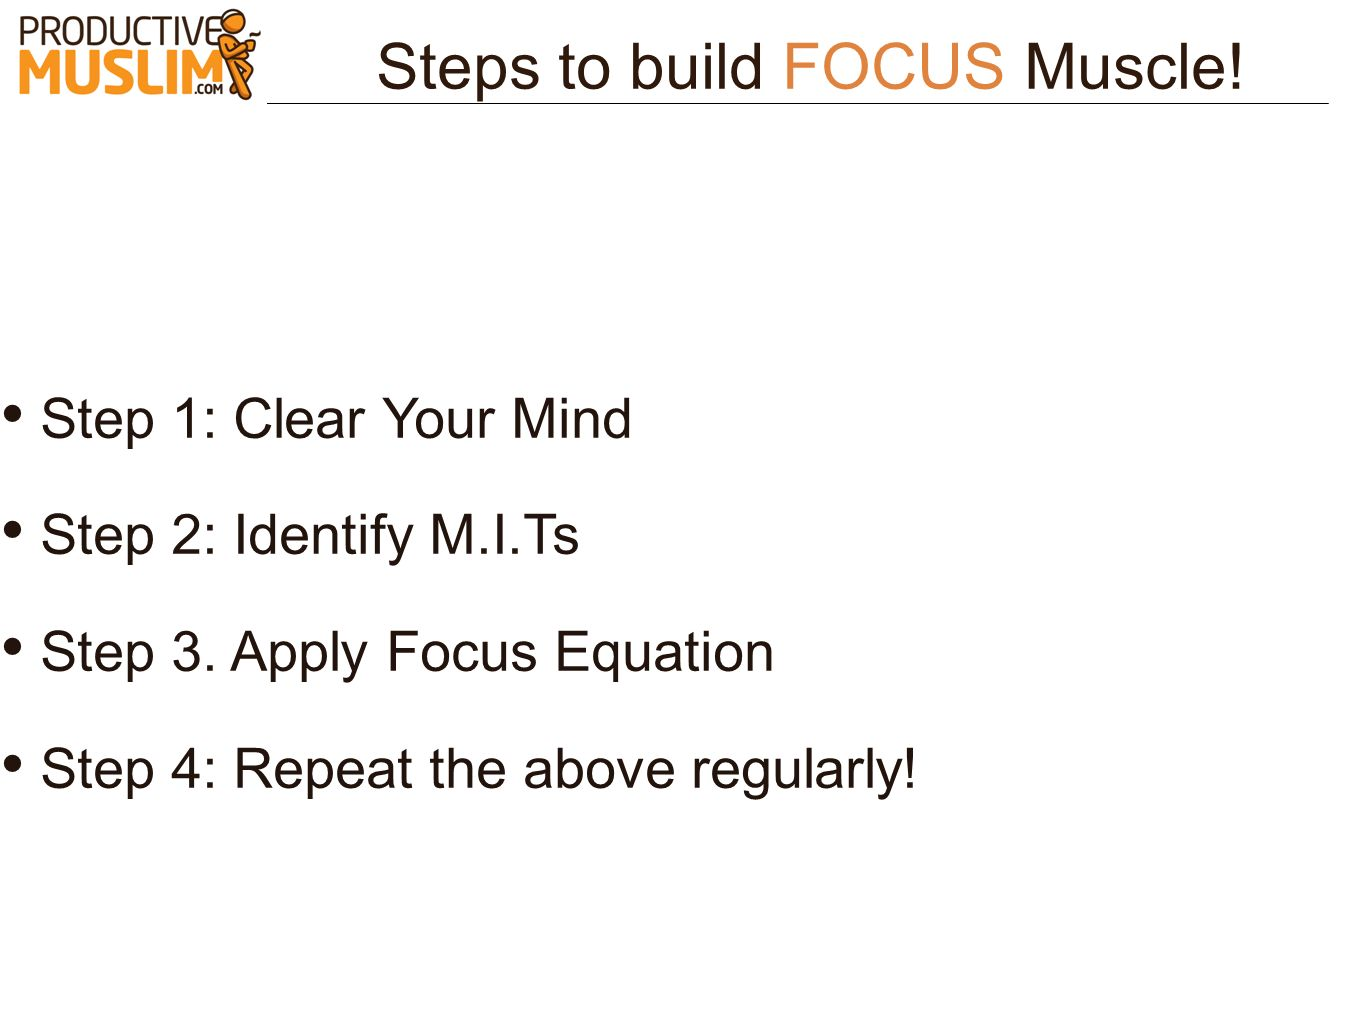 Steps to build FOCUS Muscle!